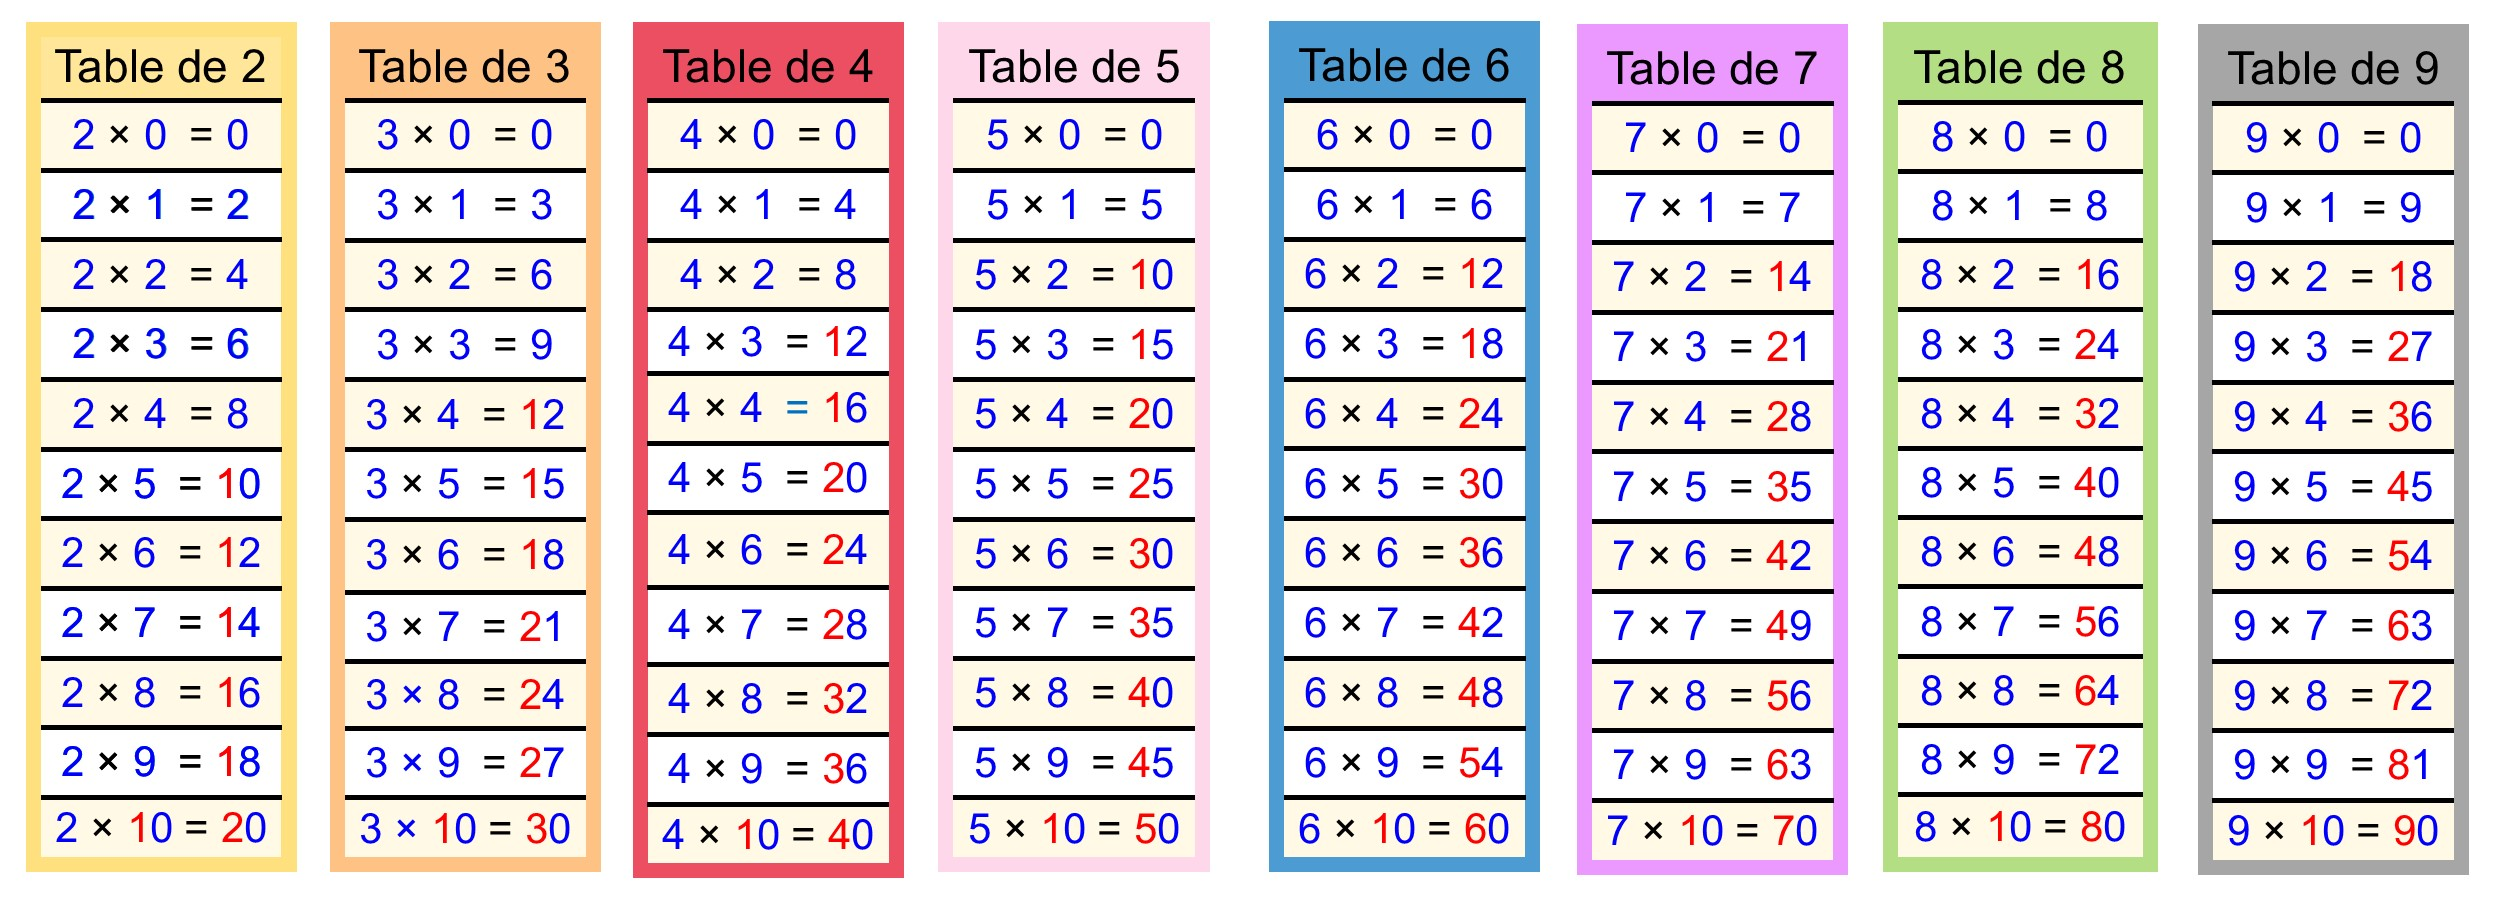 Calculer cartable fantastique for La table de 8